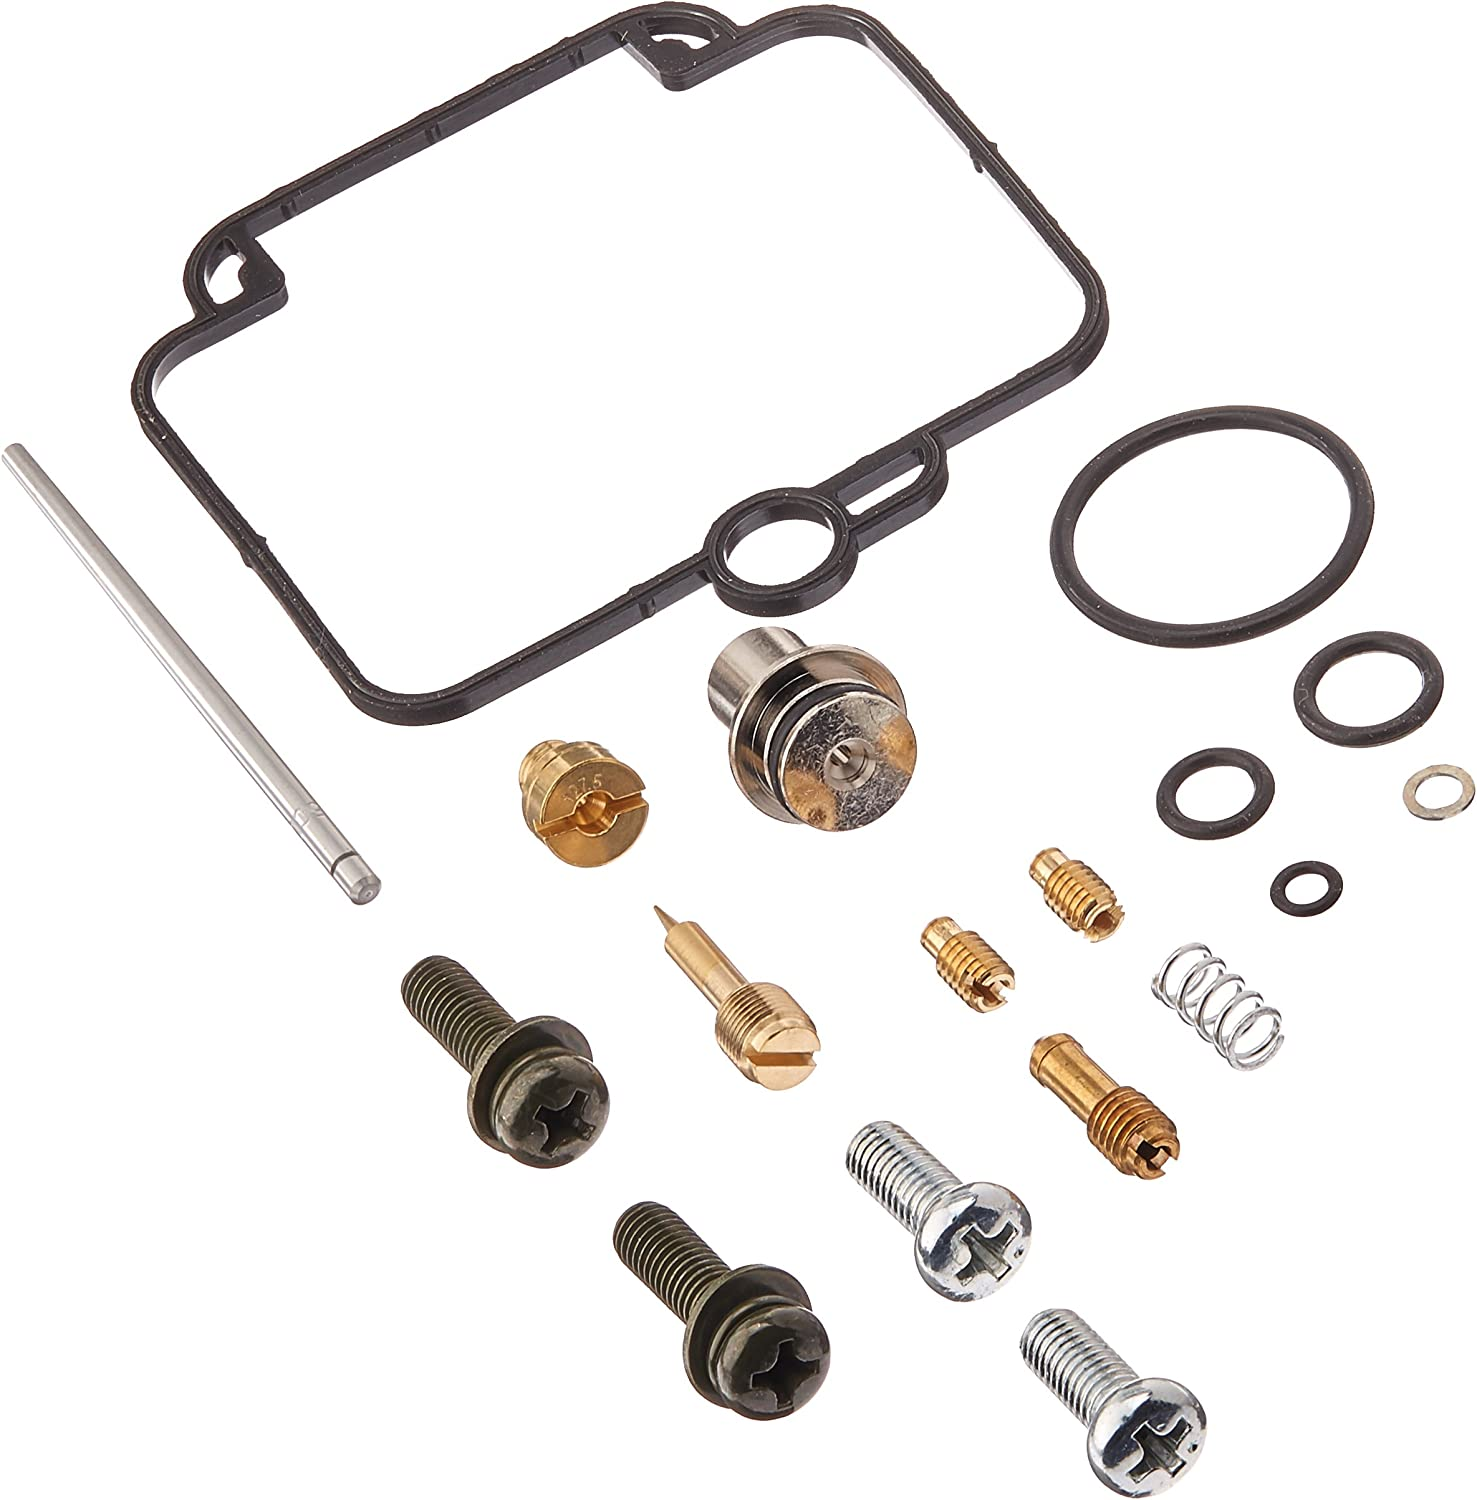 Suzuki DR 350 L 1990 Carb Carburettor Rebuild Repair Kit